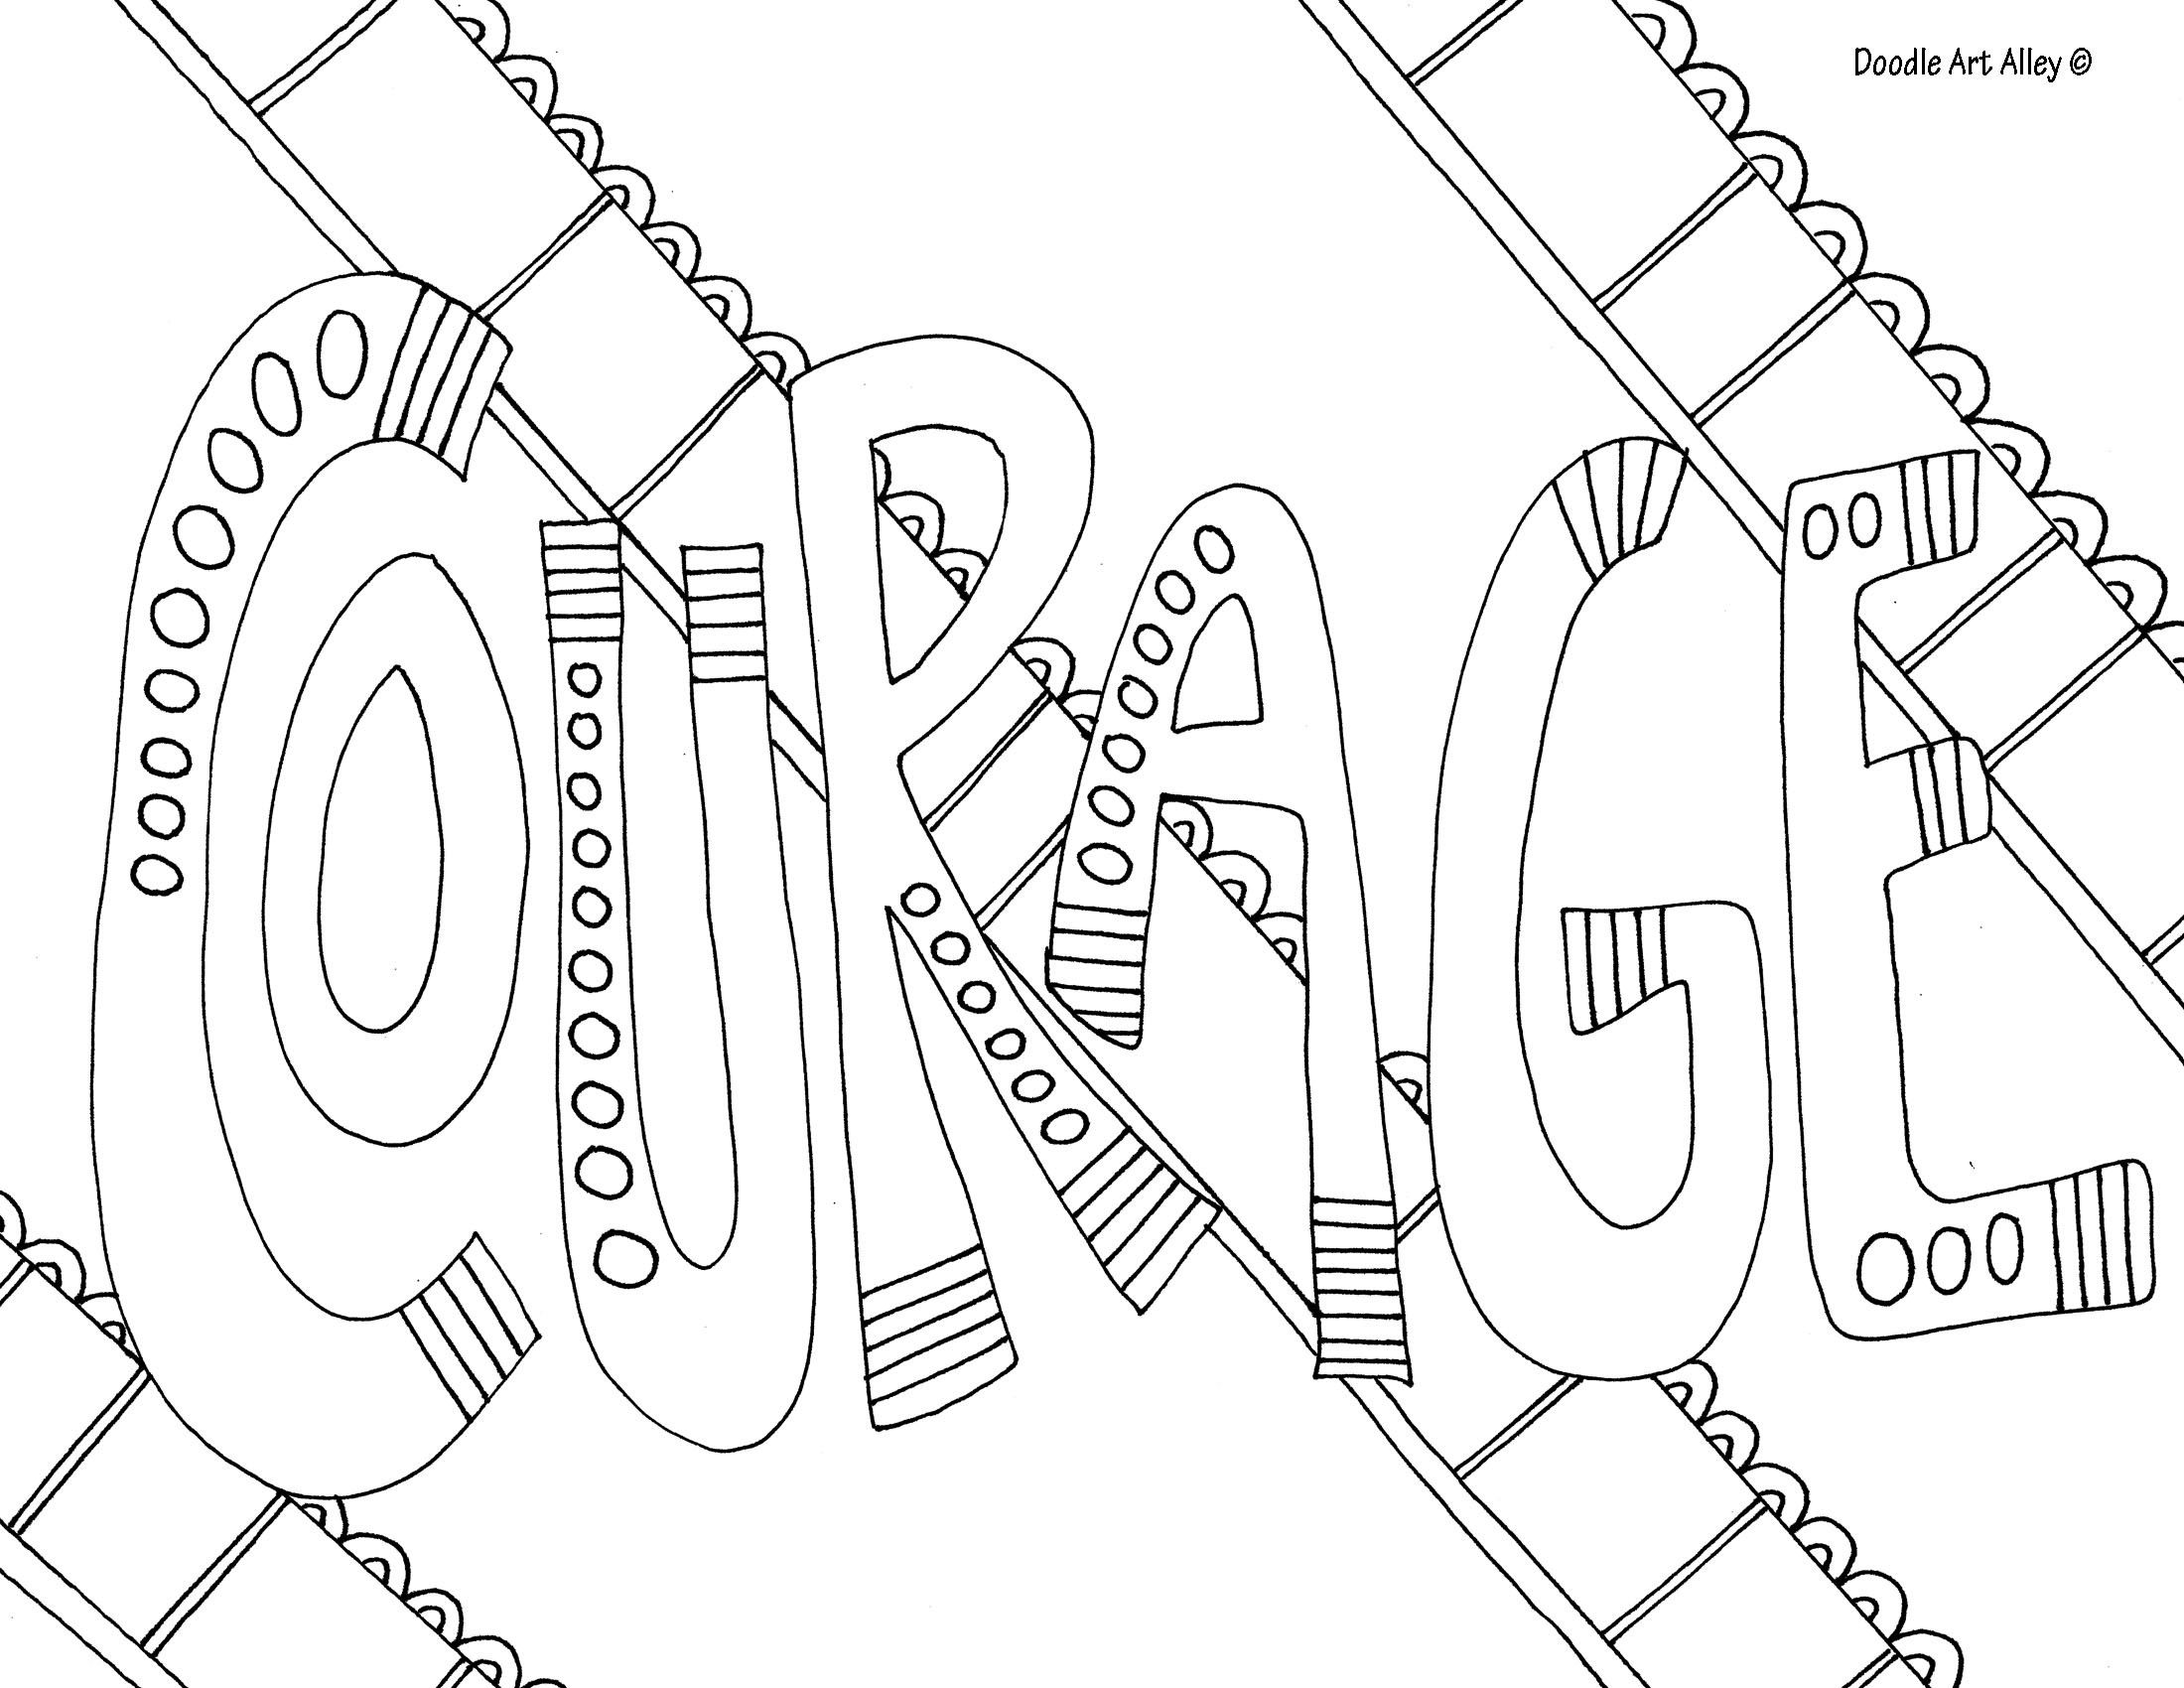 100 free printable doodle art coloring pages doodles and totoro